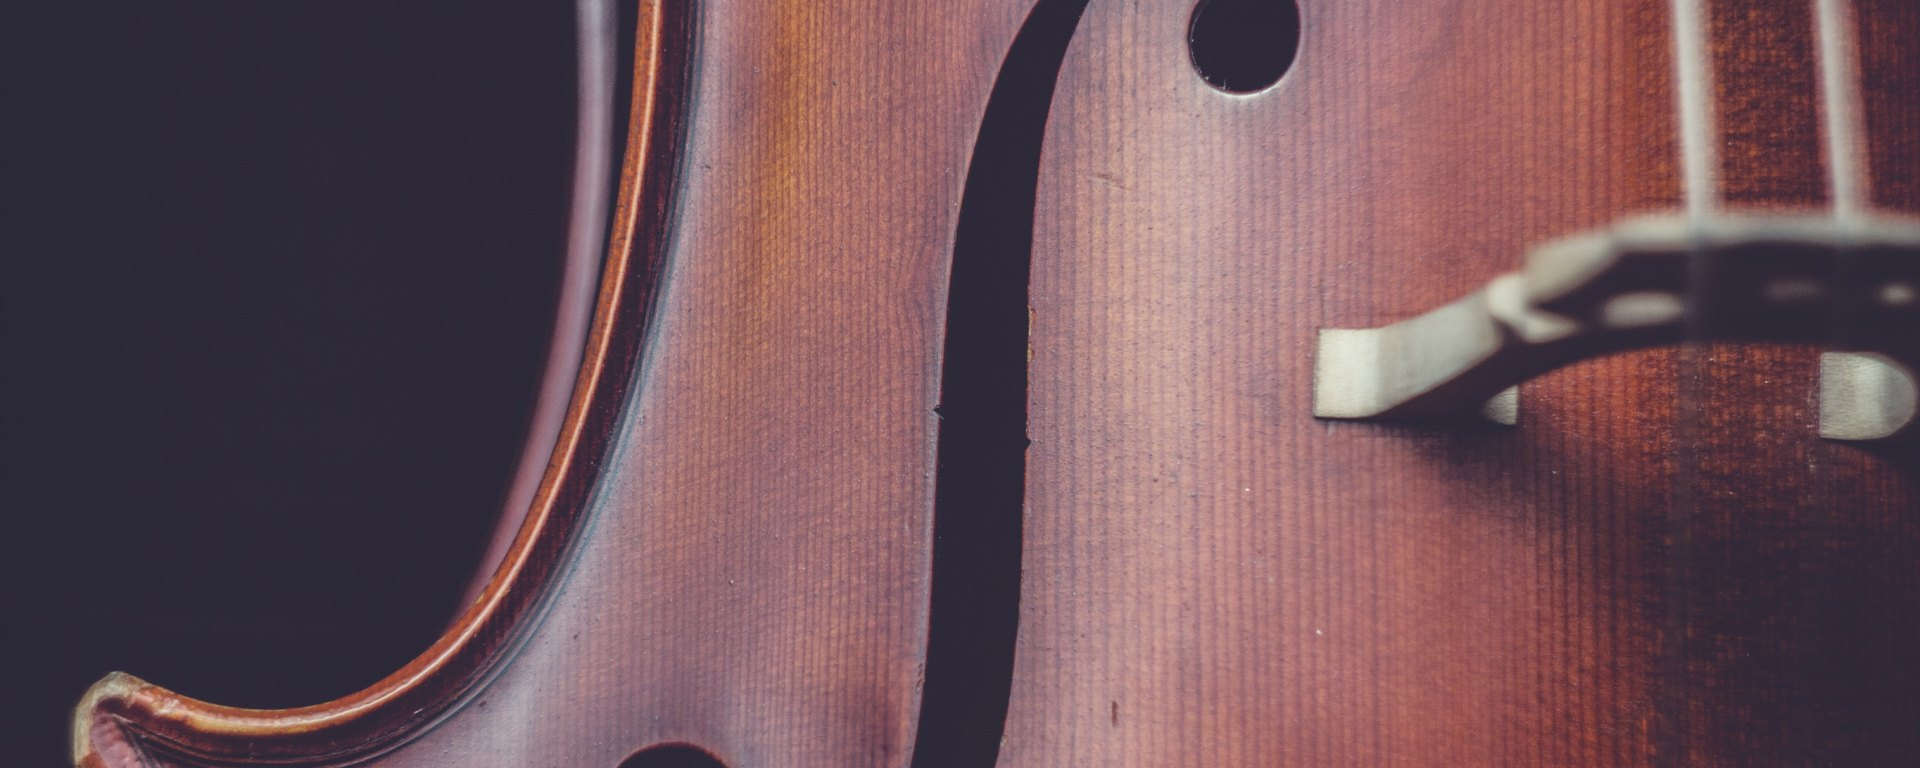 ira-selendripity-392086-unsplash cello